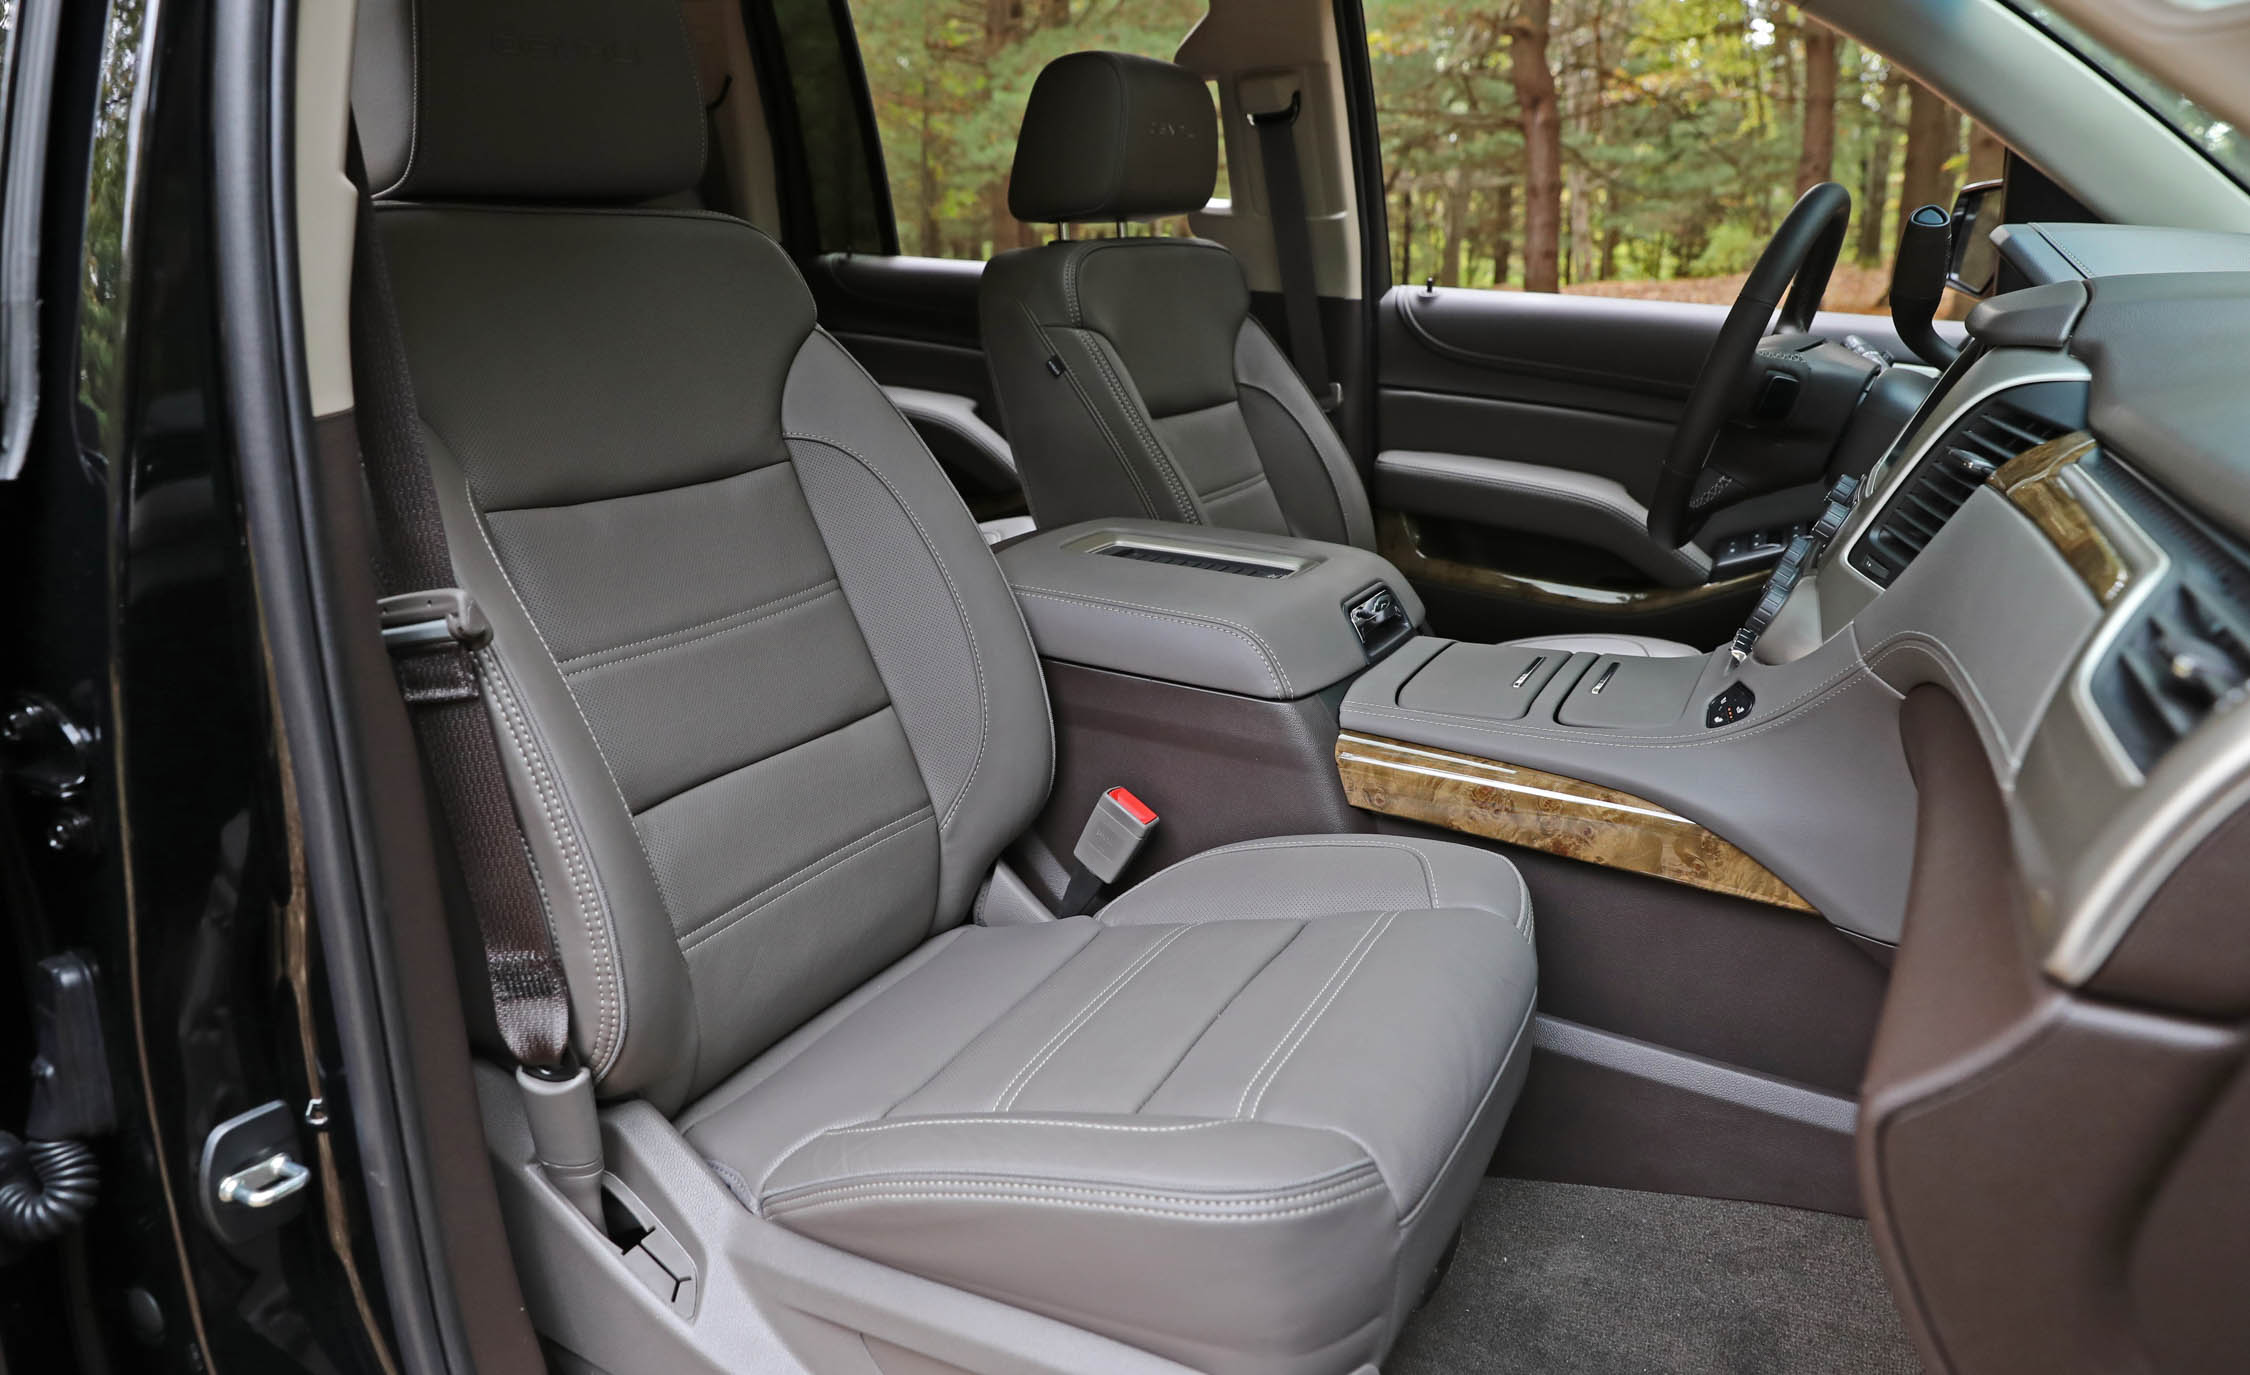 2017 Gmc Yukon Xl Denali Interior Seats Front (Photo 18 of 26)